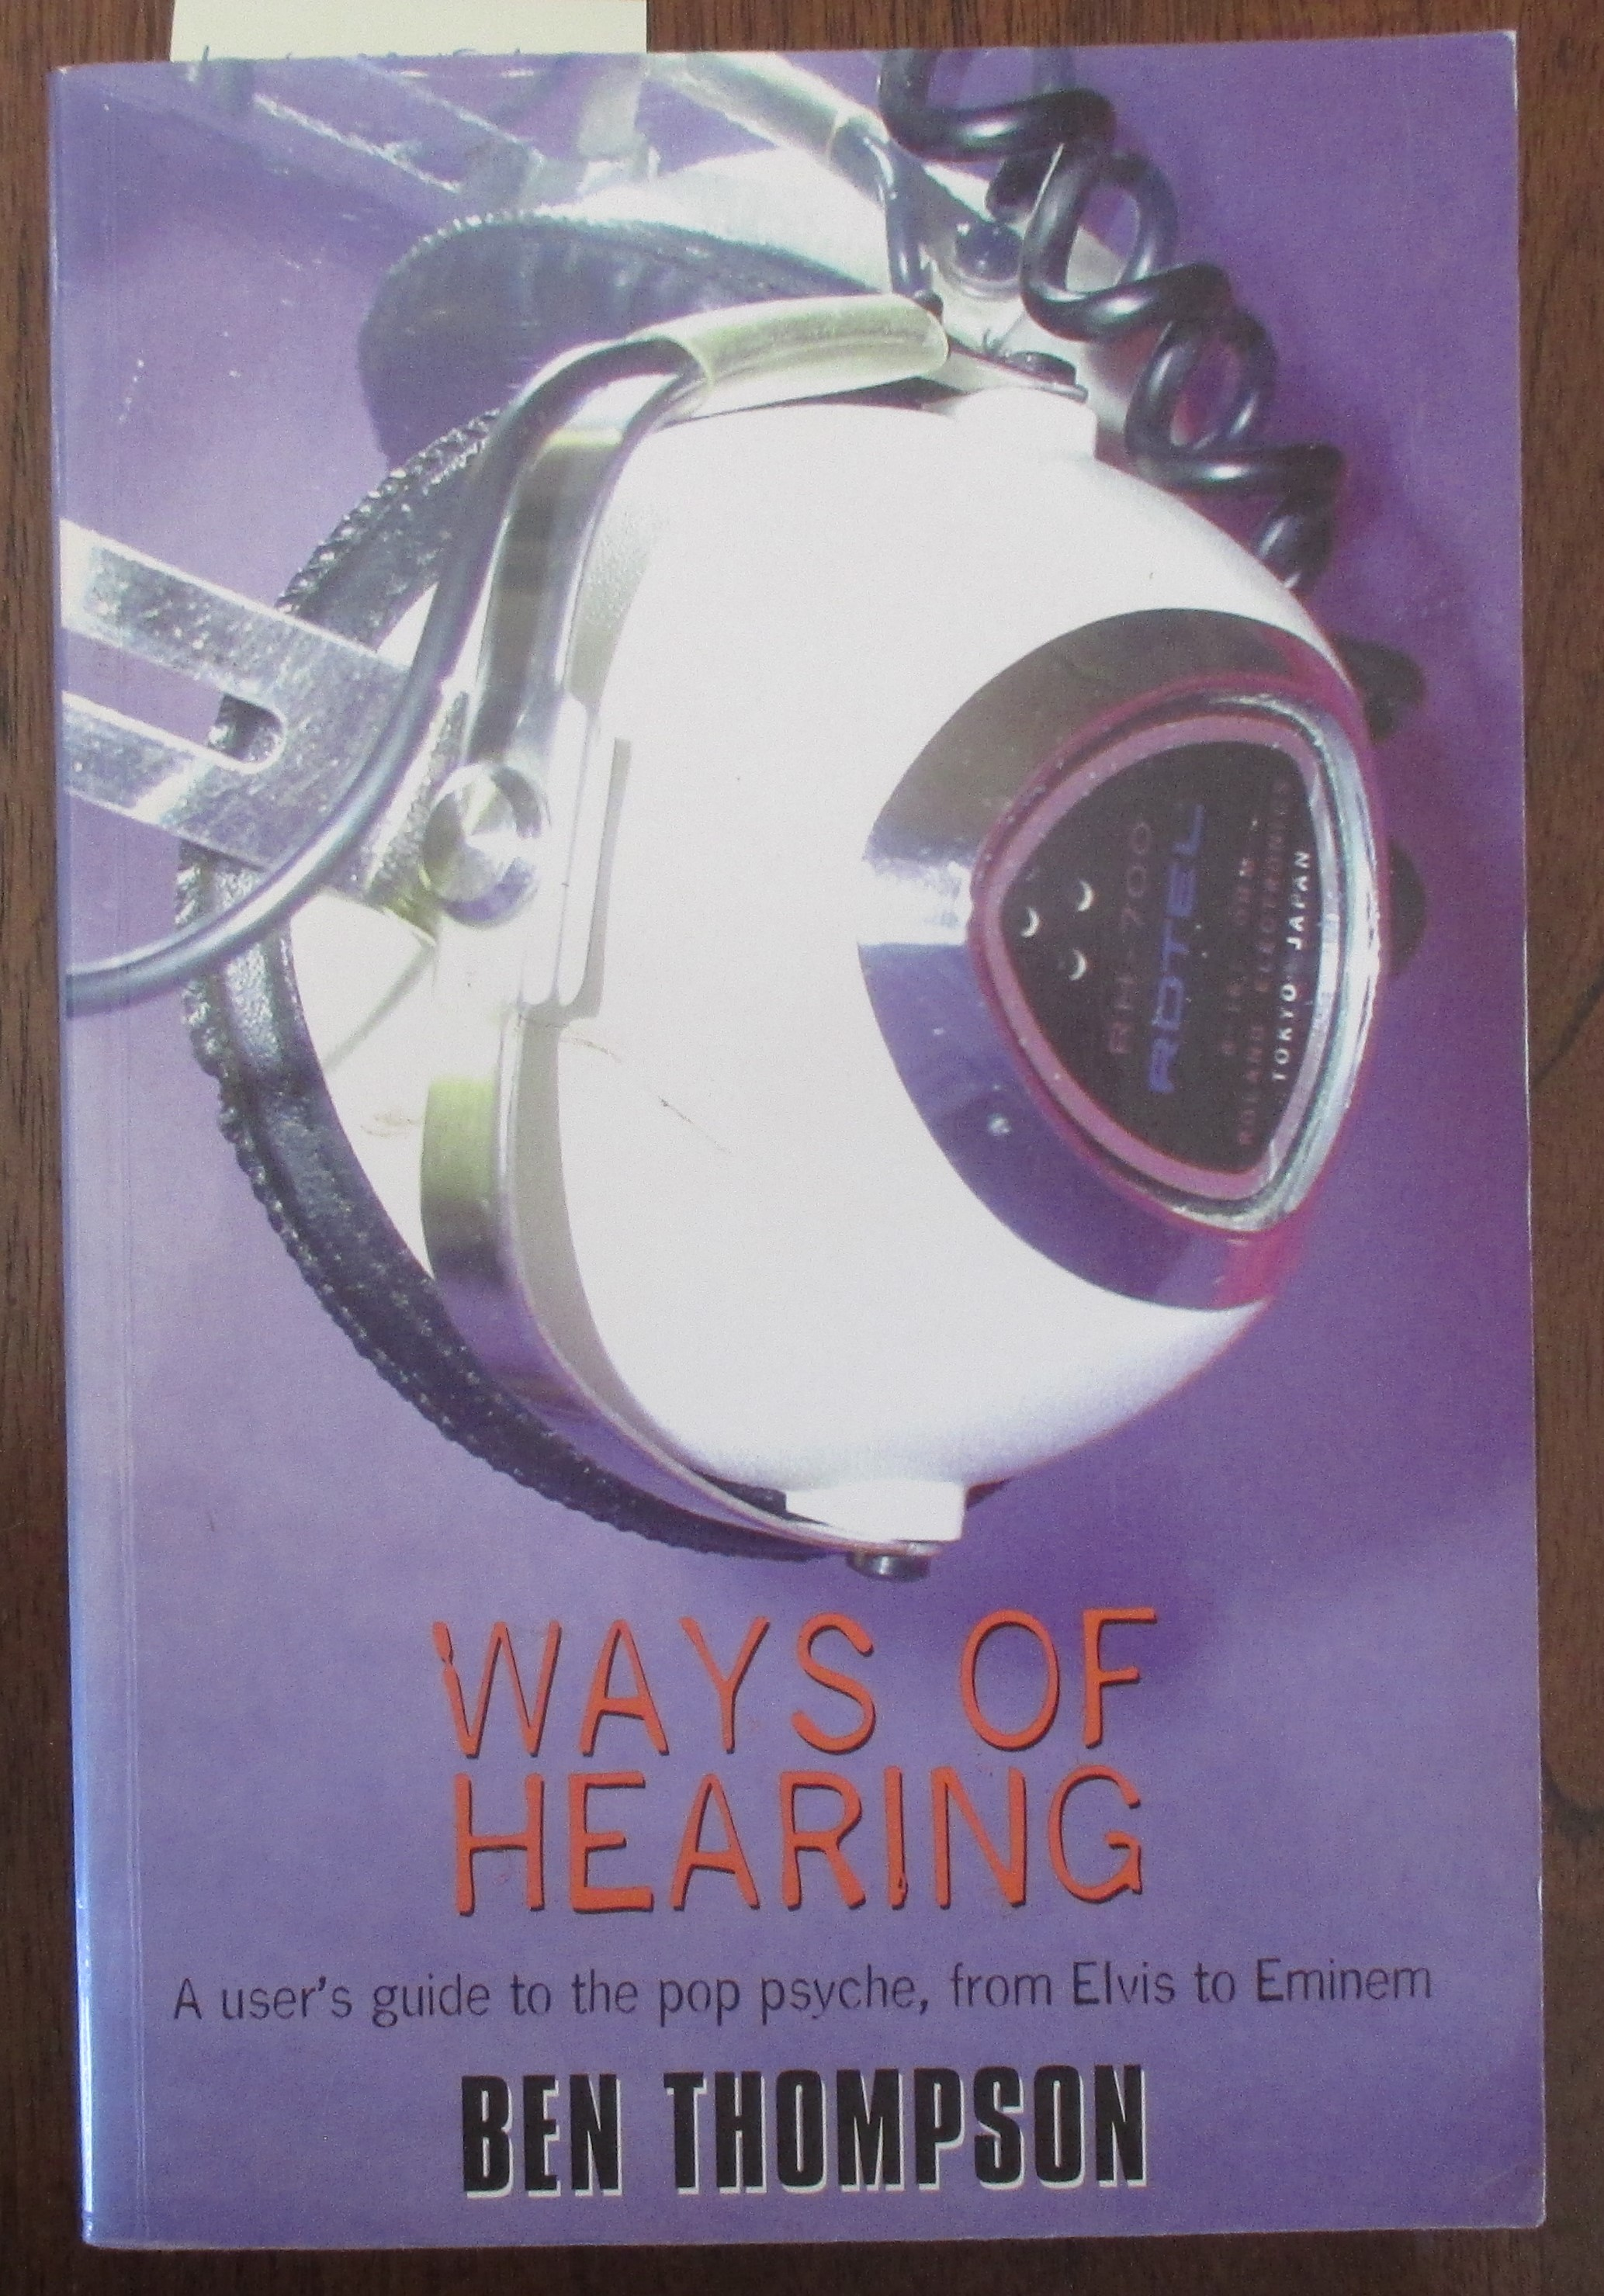 Image for Ways of Hearing: A User's Guide to the Pop Psyche, from Elvis to Eminem